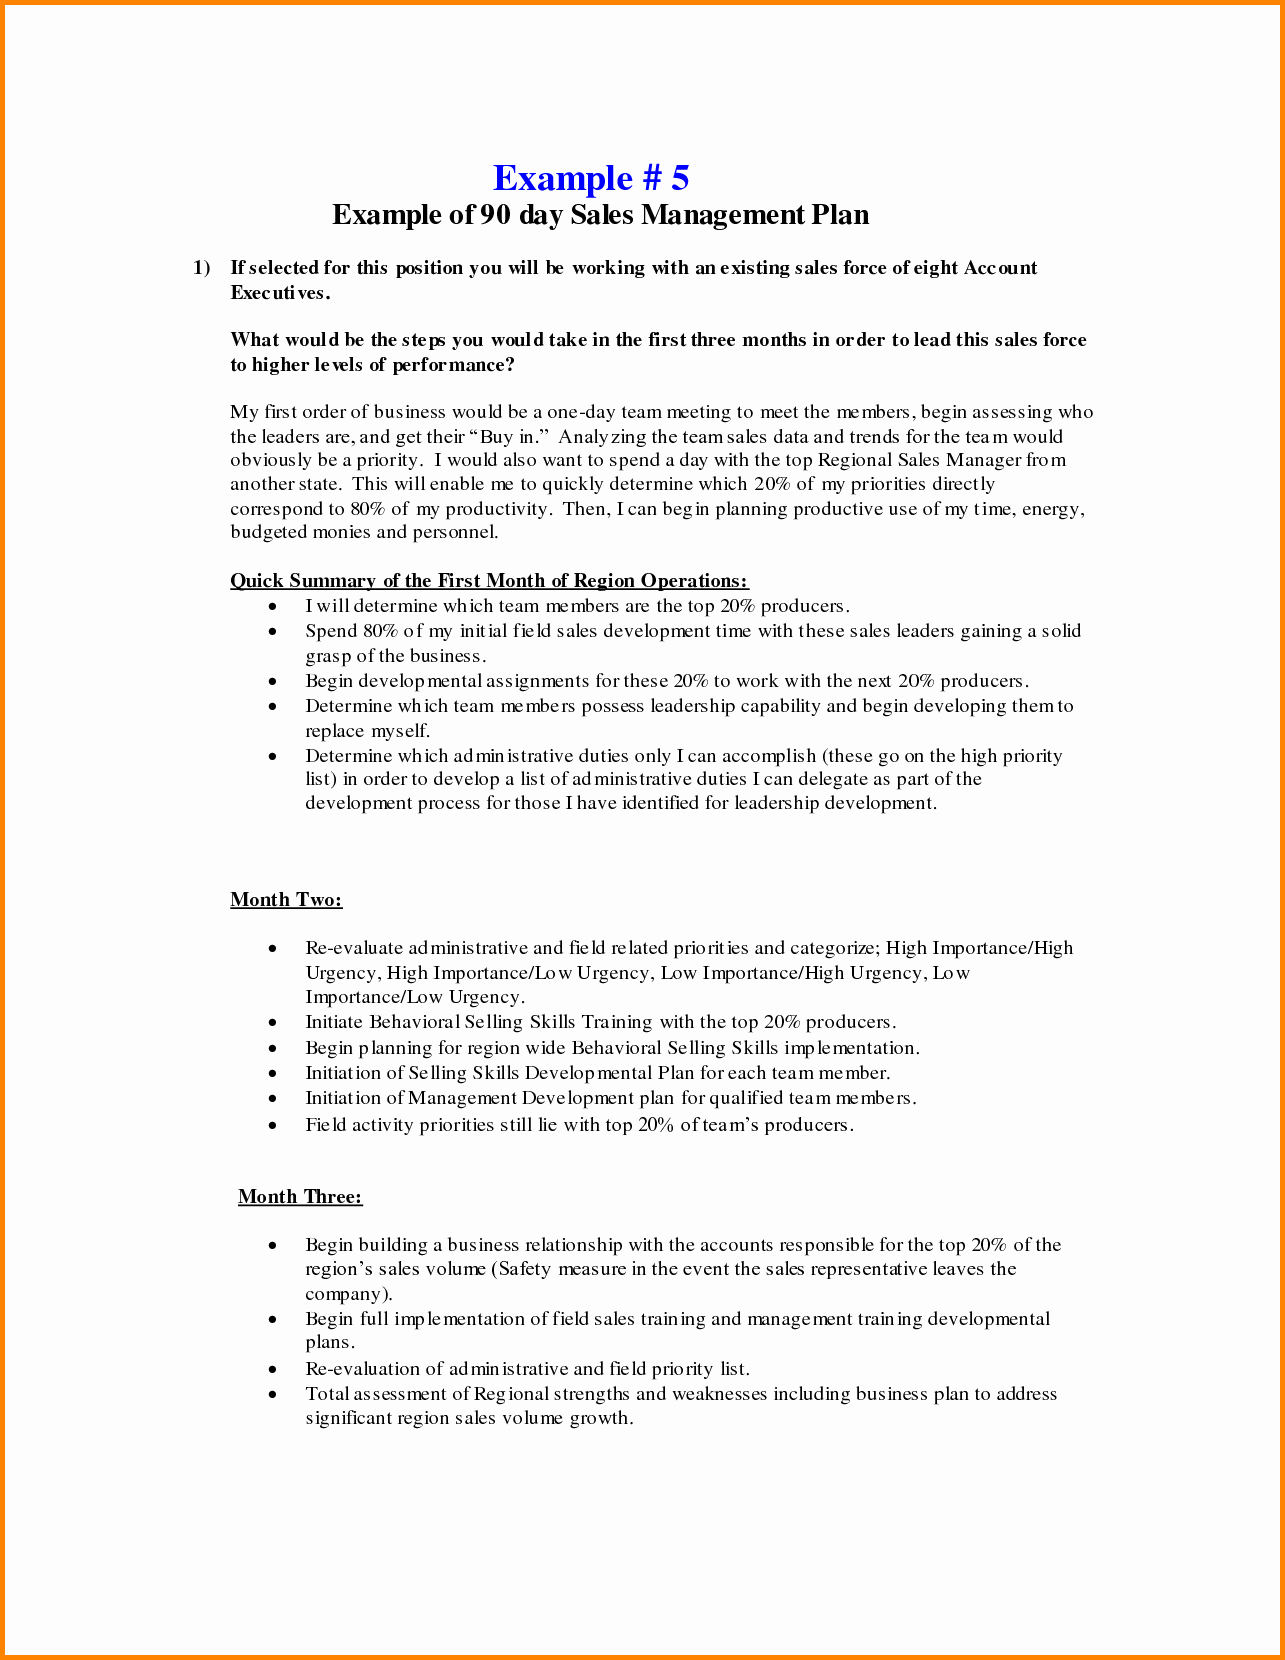 100 Day Plan New Job Awesome 30 60 90 Day Business Plan Template